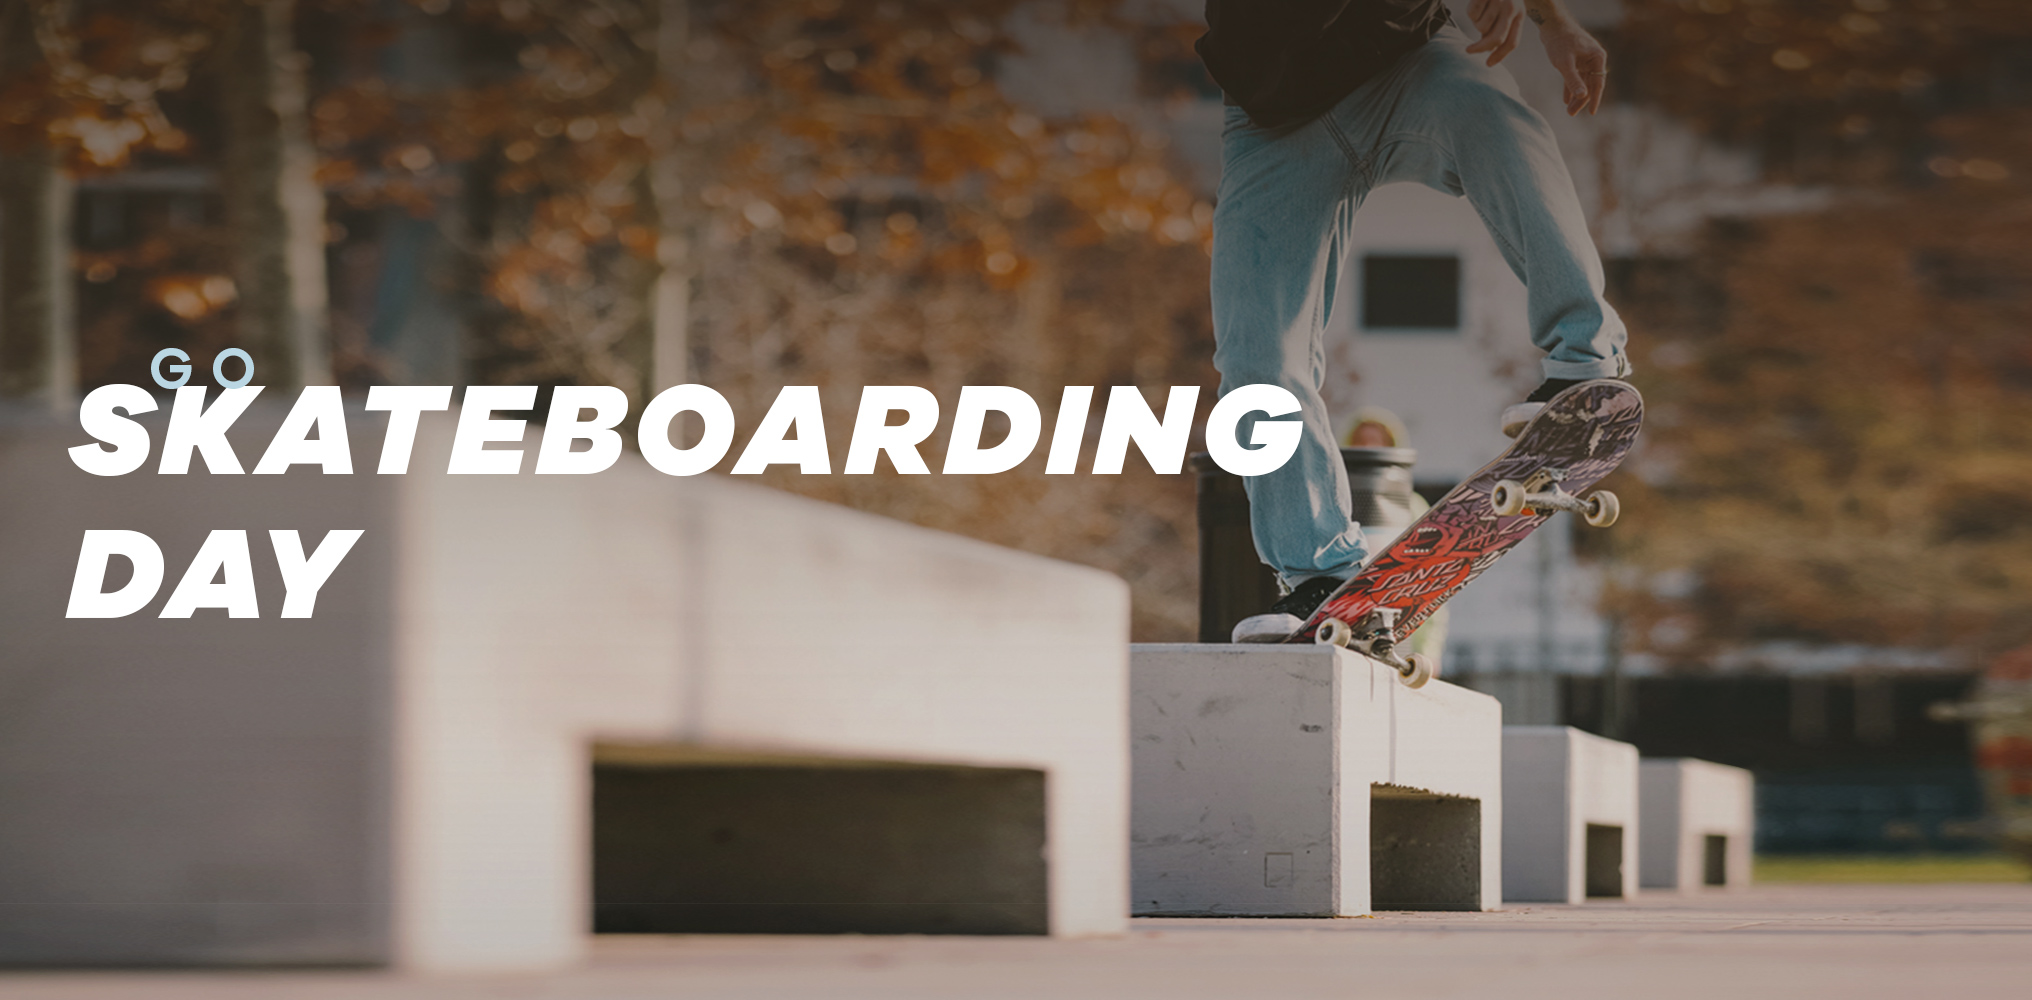 Go Skateboarding Day | Update your skate deck